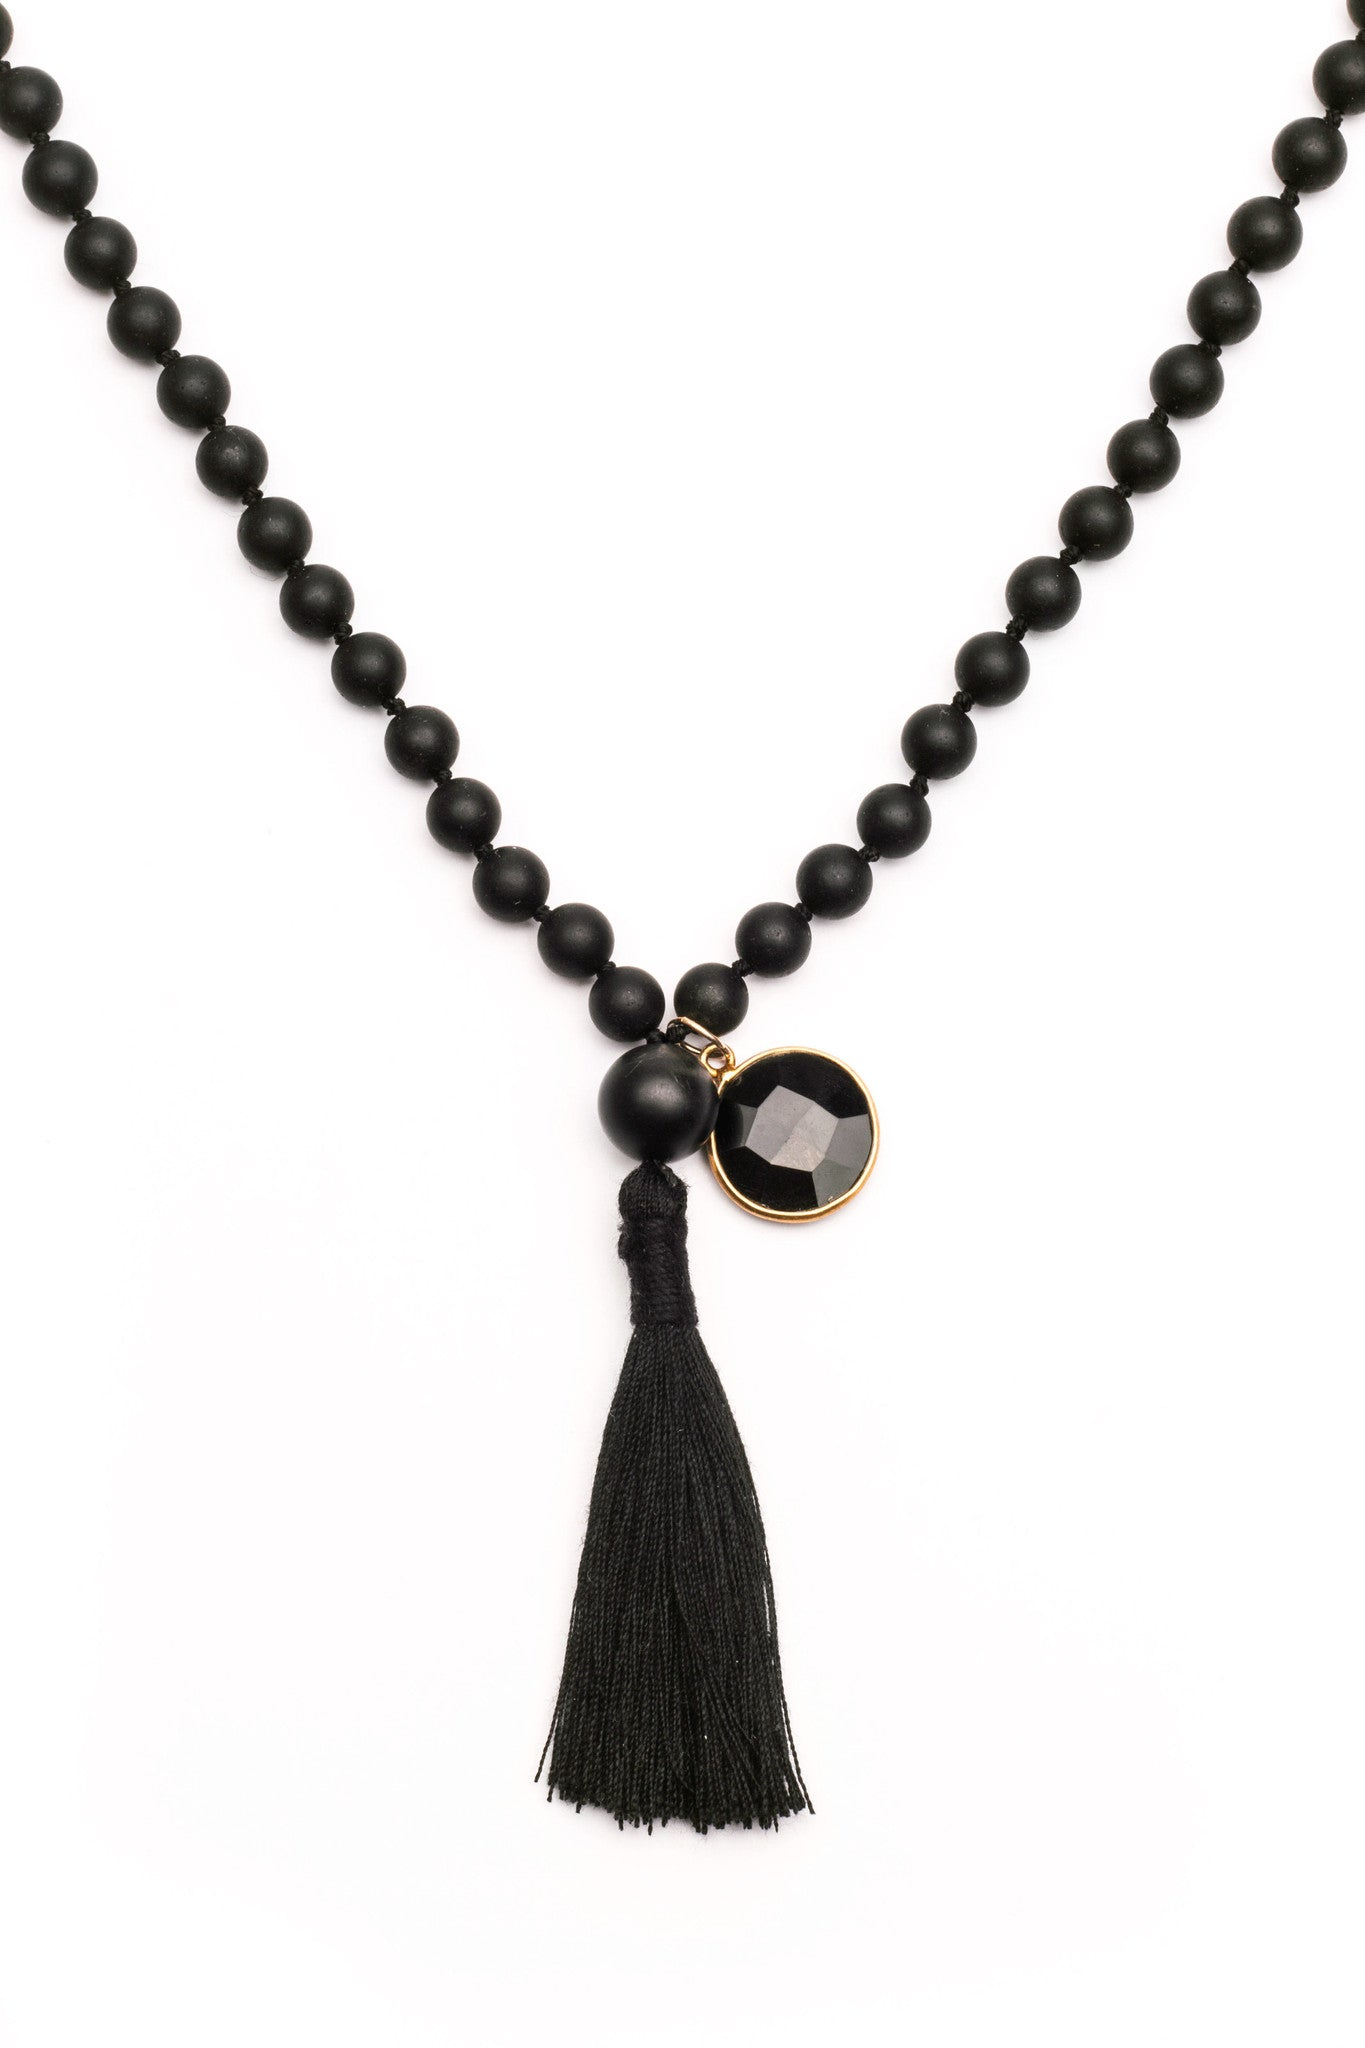 Black and Gold Onix Mala Necklace